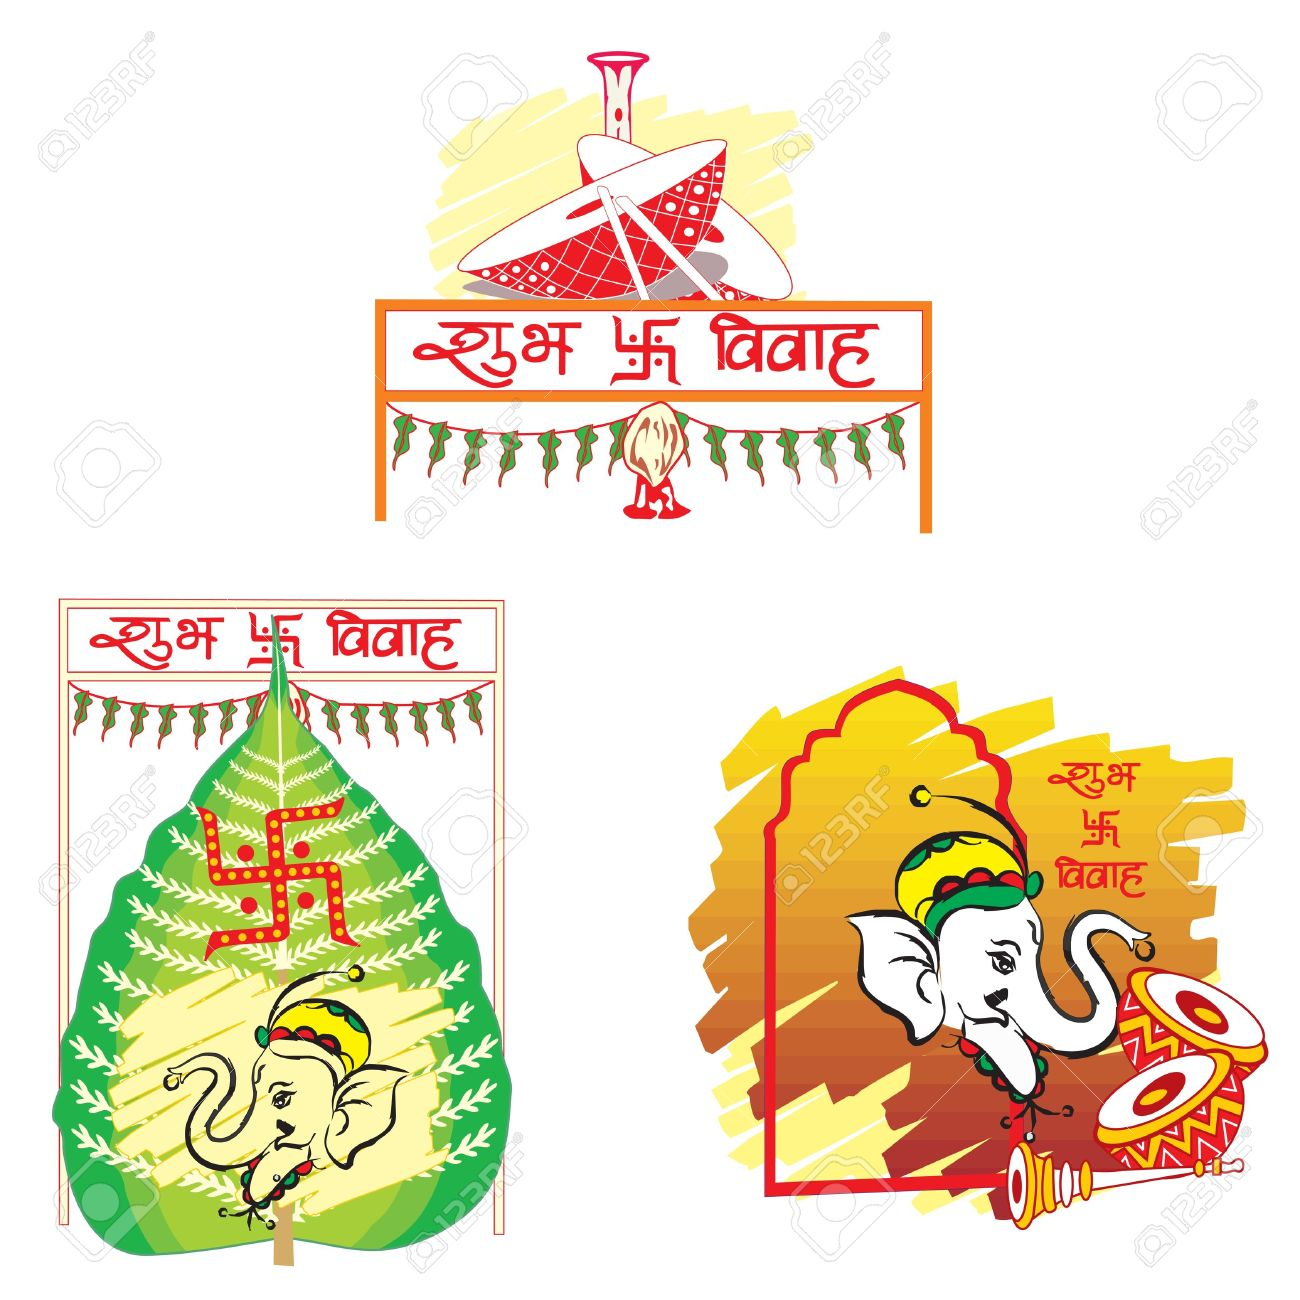 indian wedding clipart free download 3   Clipart Station